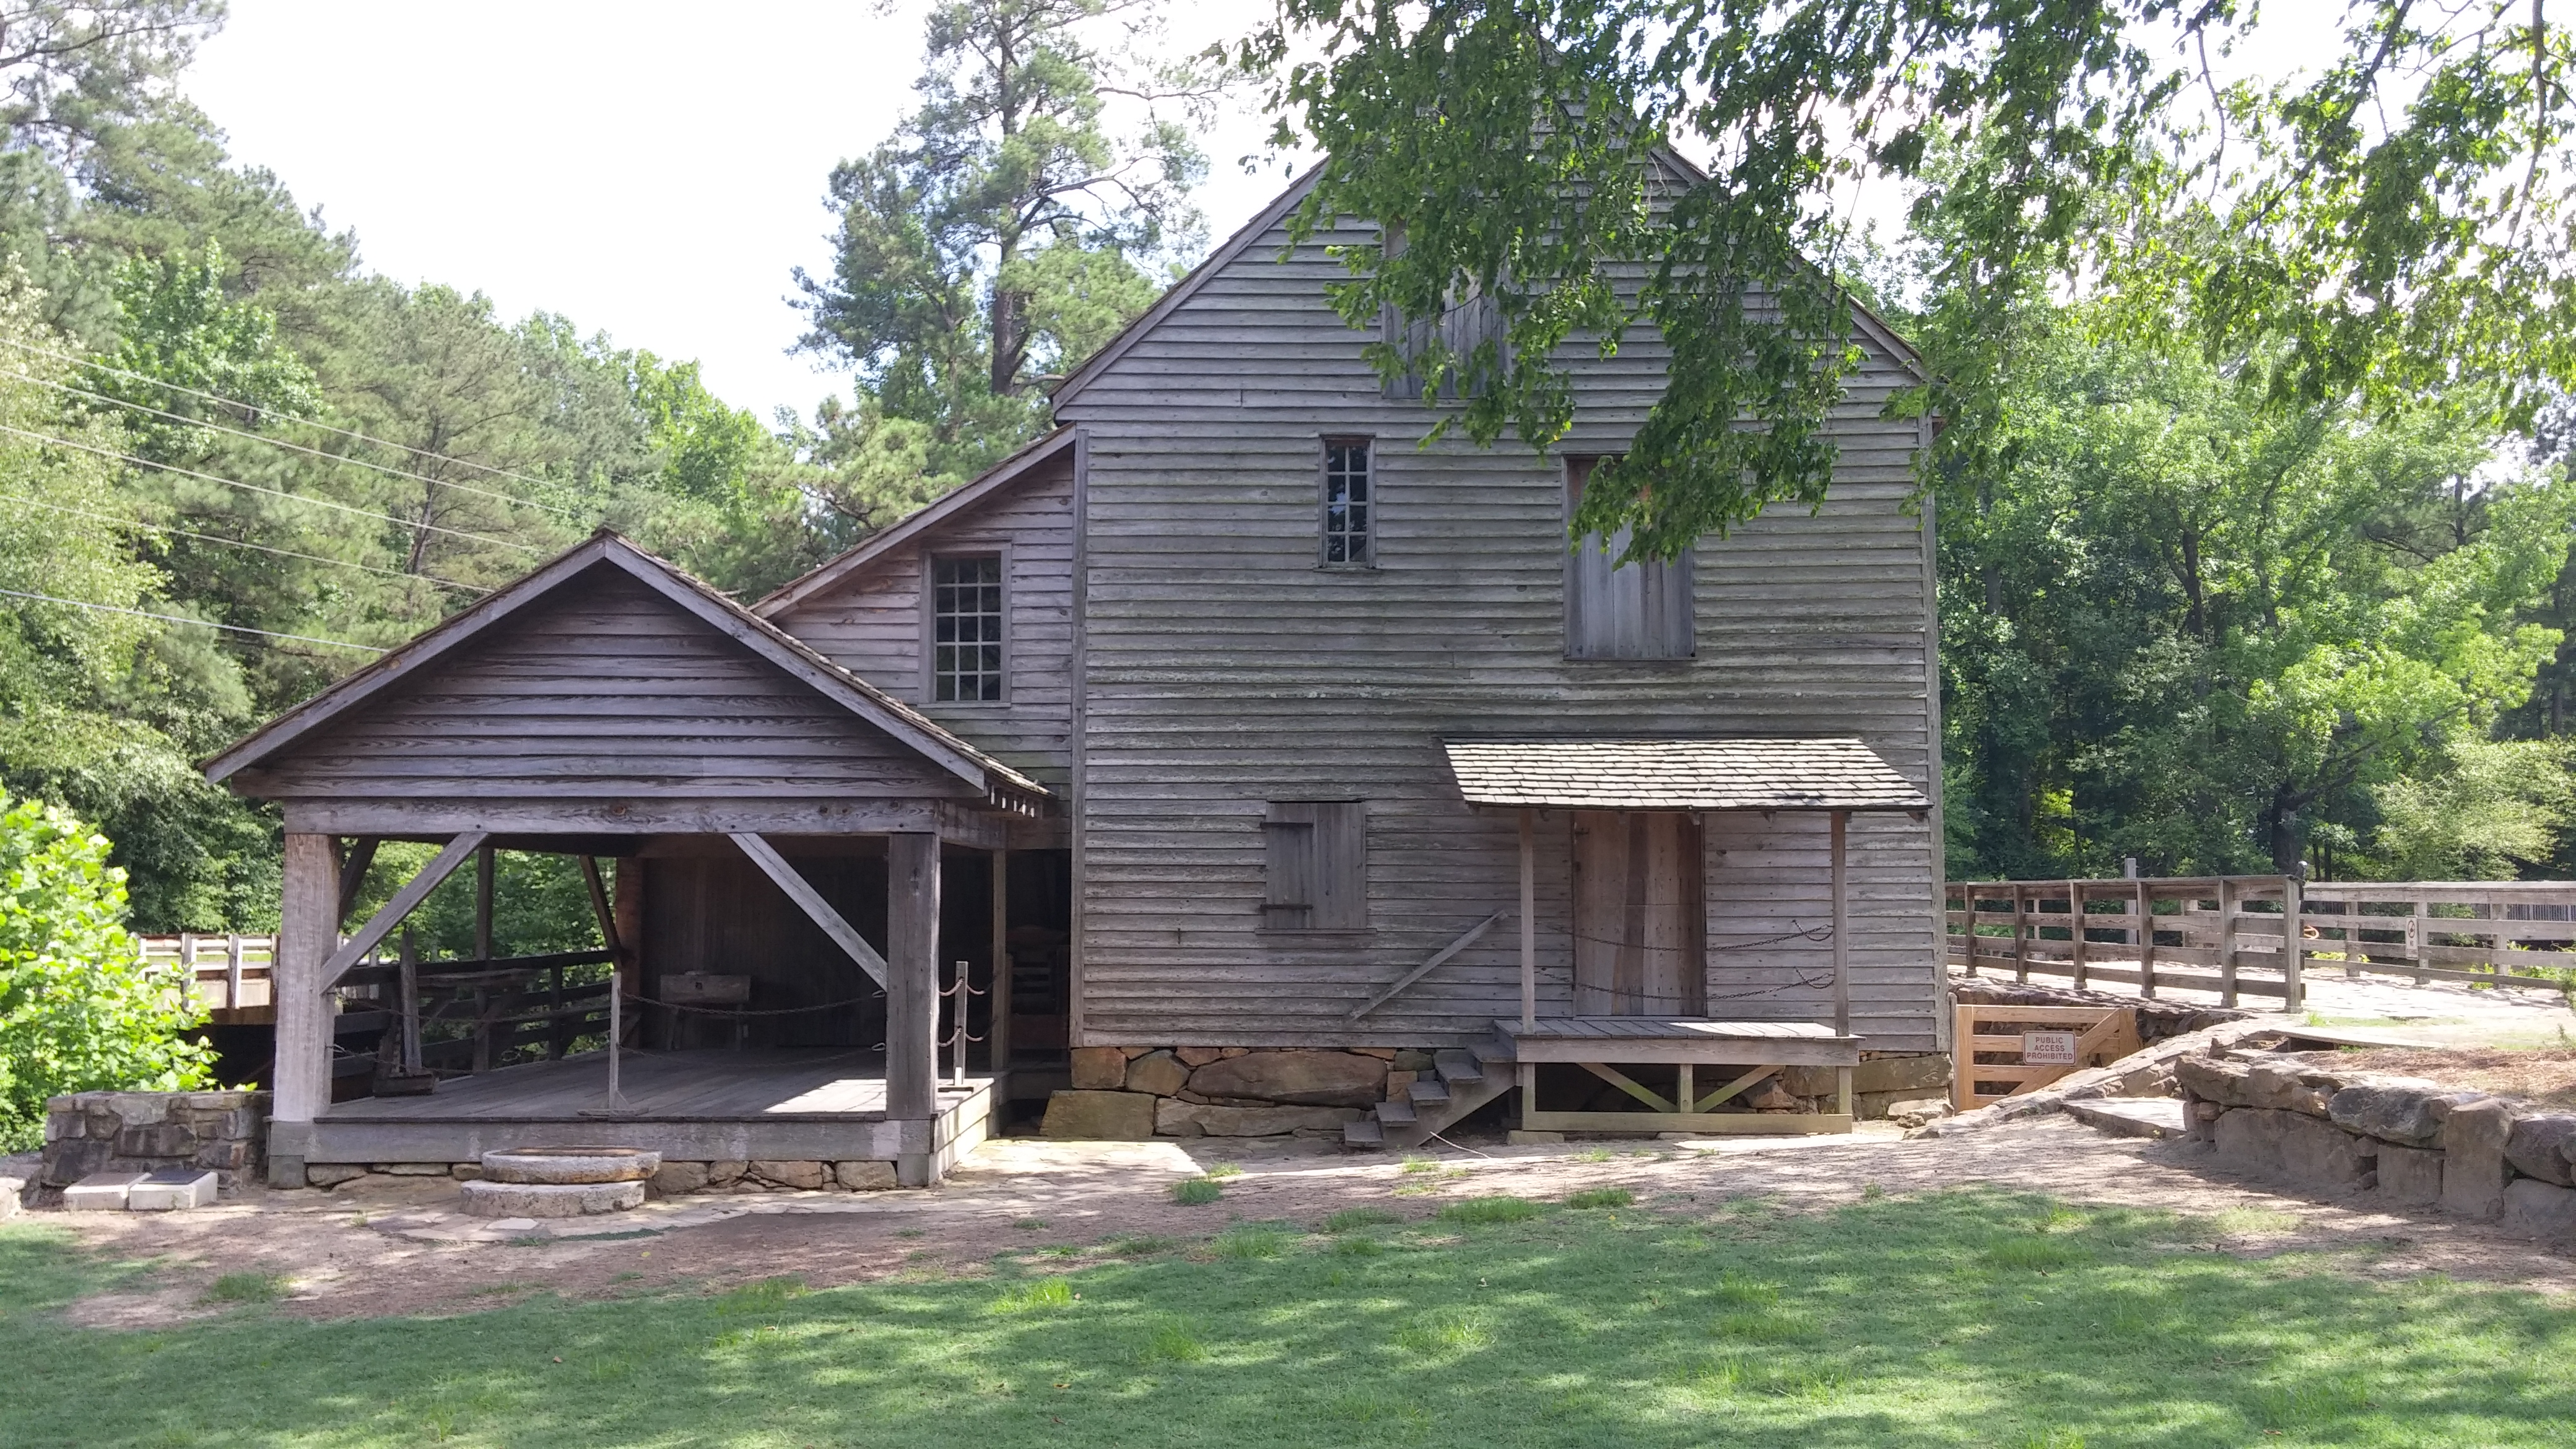 The entrance to the mill and outdoor work area.